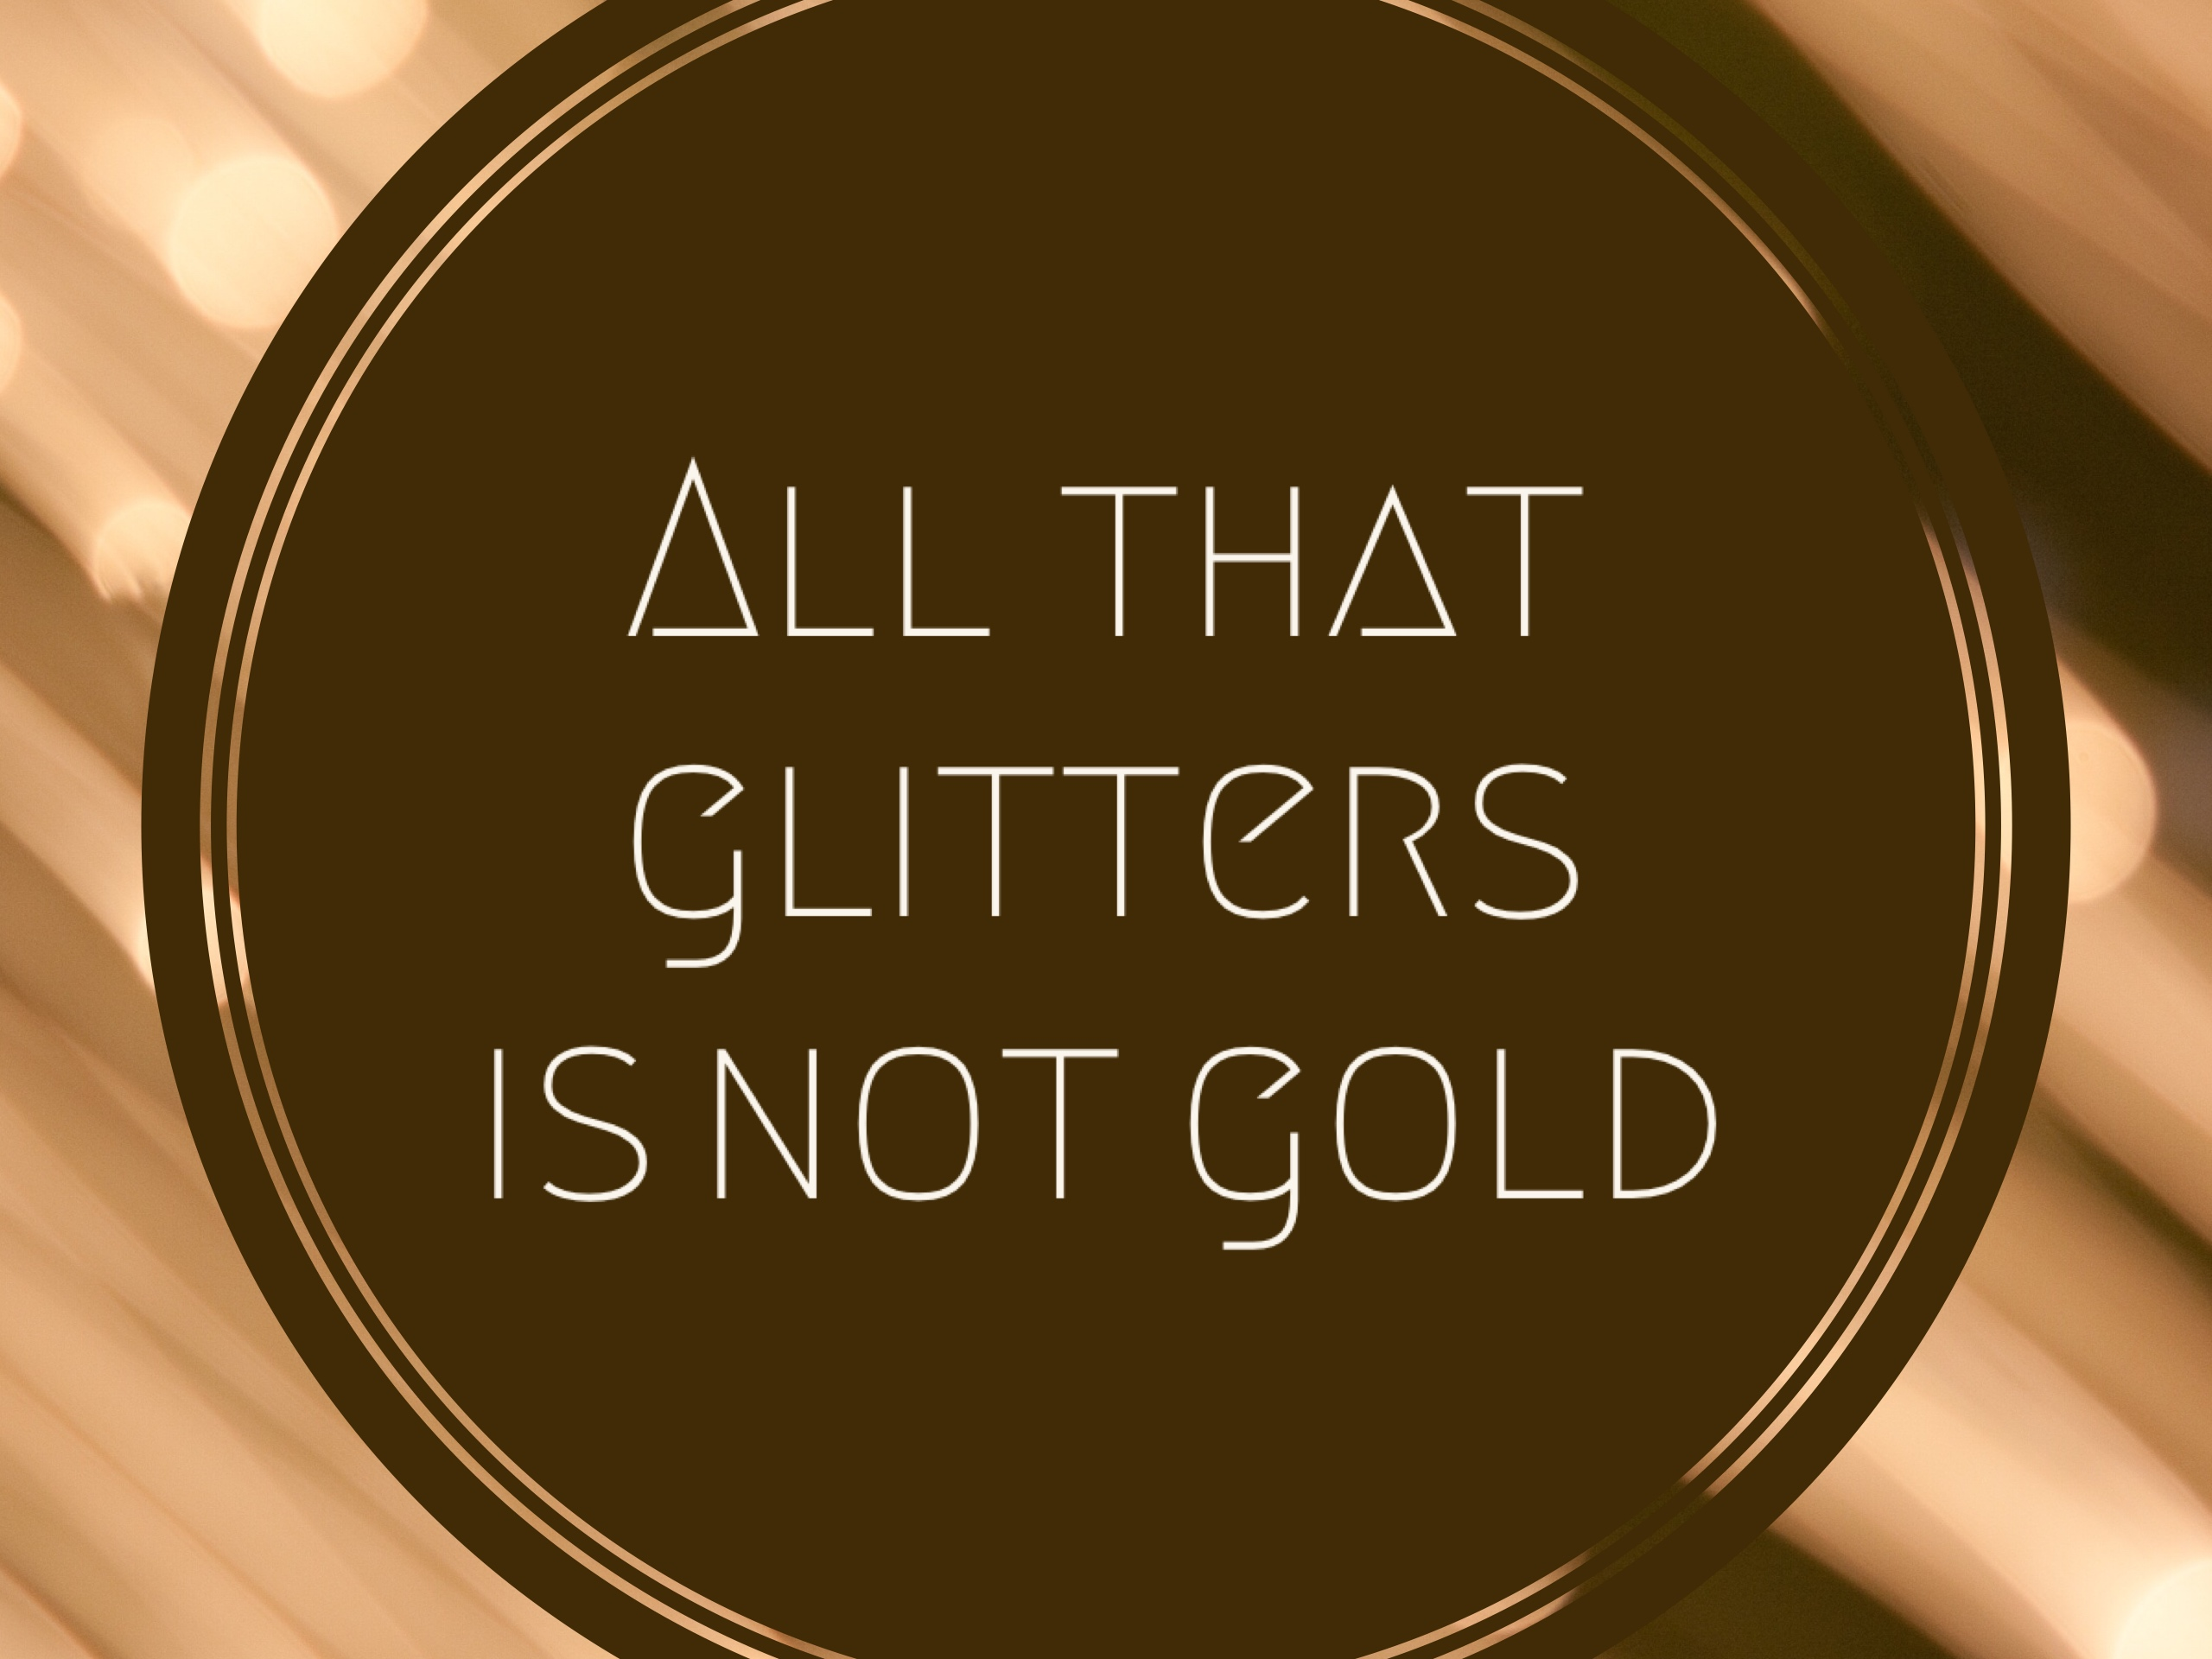 all that glitters is not gold Find short and long essay on all that glitters is not gold for students under words limit of 100, 200, 300, 400 and 600 words.